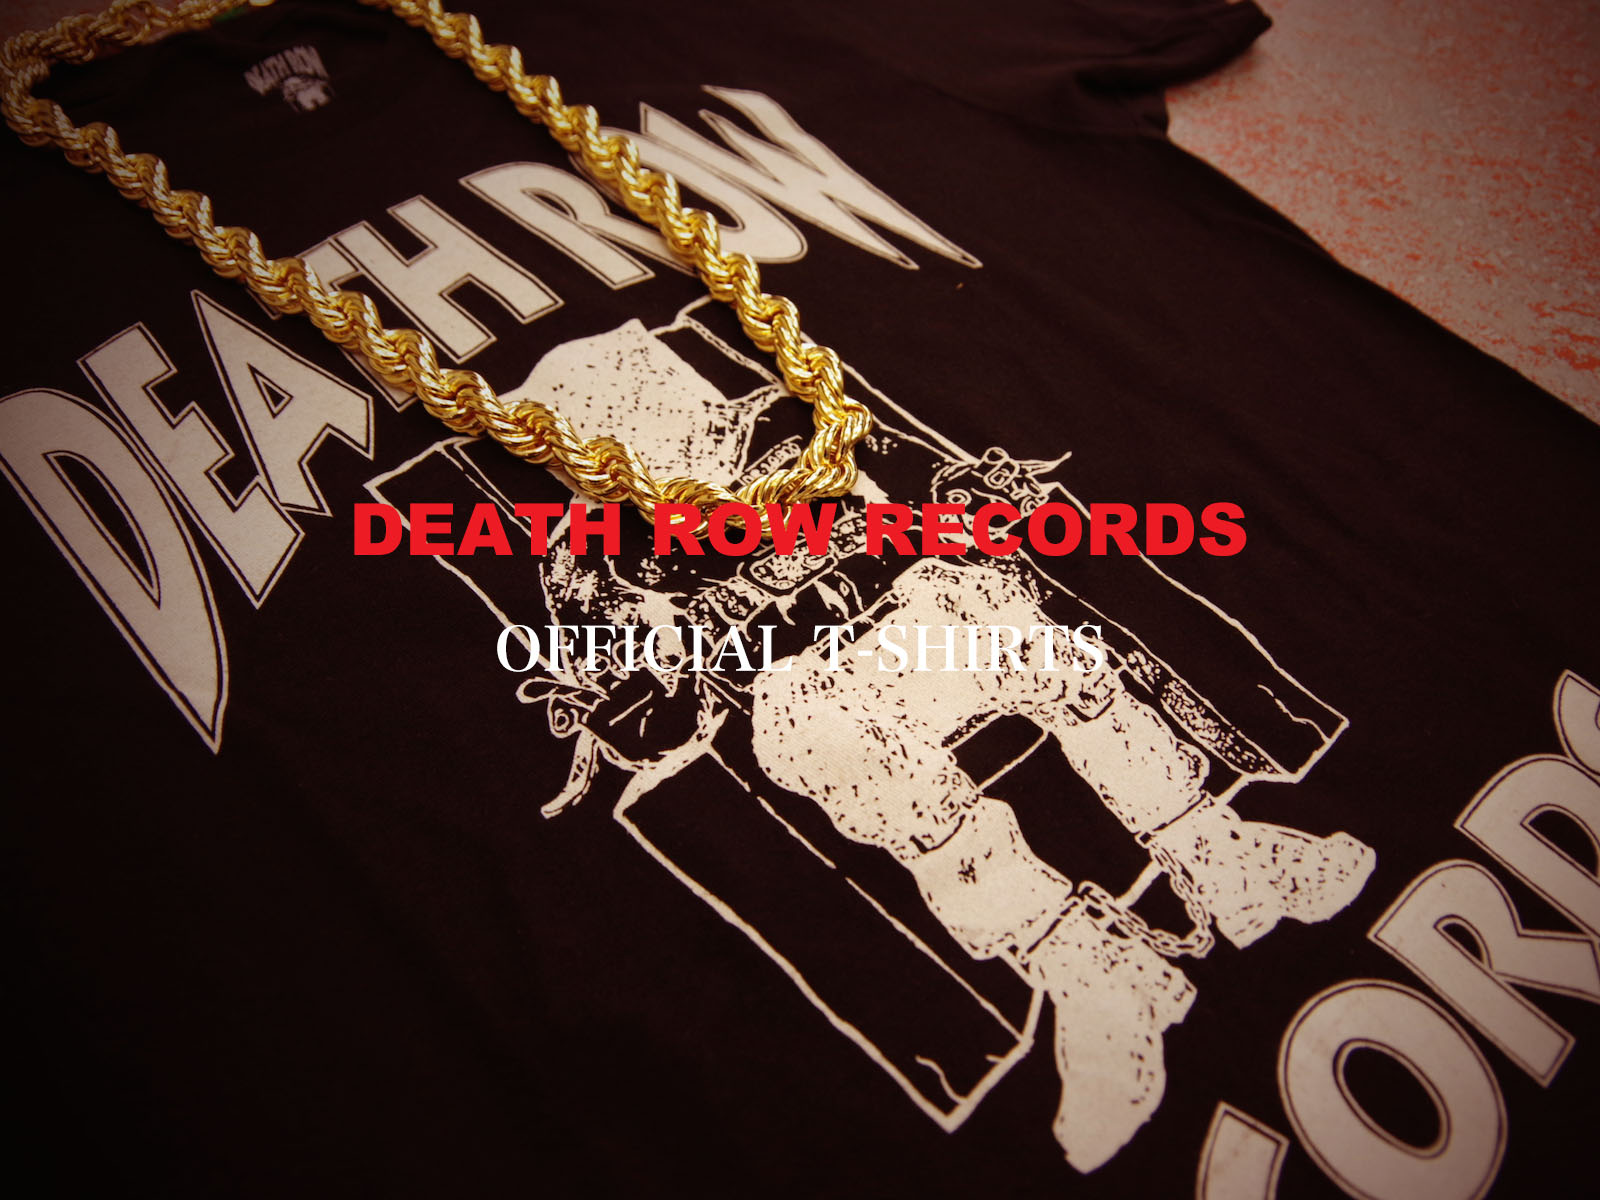 DEATH ROW RECORDS OFFICAL T-SHIRTS